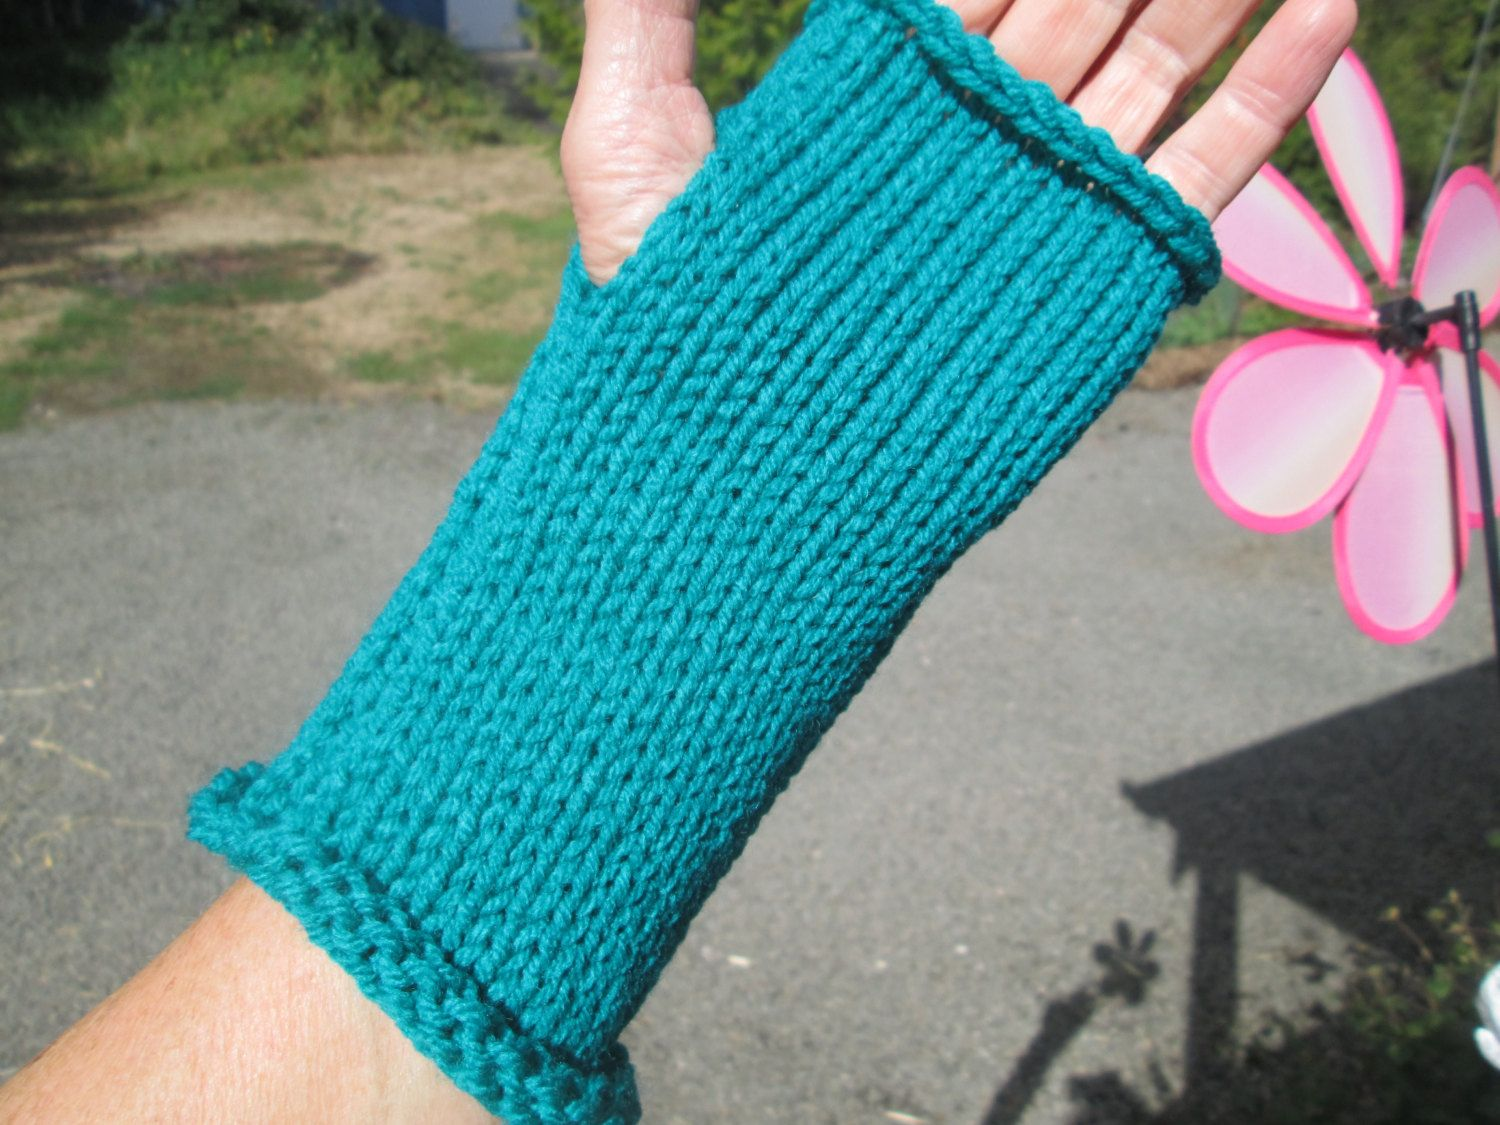 Driving texting gloves - Turquoise Fingerless Gloves By Suzannesstitches Wrist Warmer Driving Gloves Knitted Fingerless Gloves Arm Warmers Texting Gloves Glove